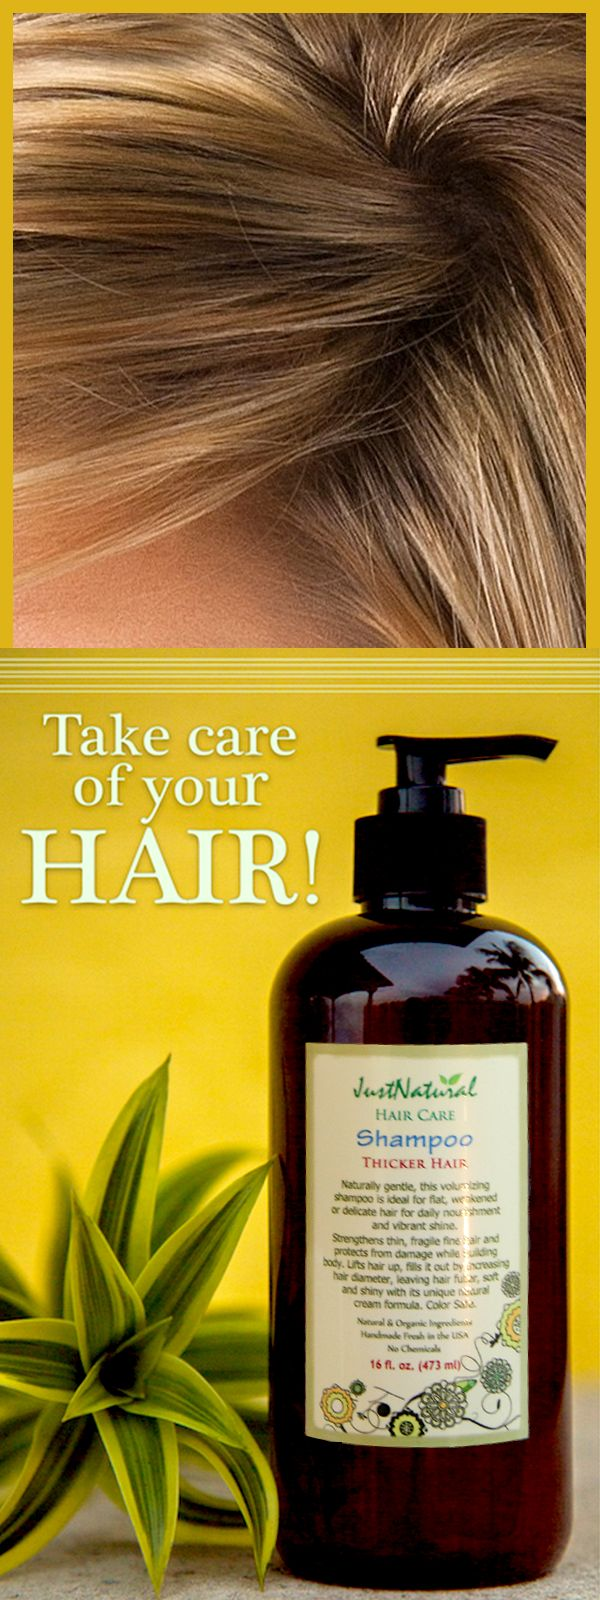 Right away your hair begins to thicken as the rich nutrients in this shampoo are absorbed by each hair strand. Encourage your hair to grow thicker and fuller with Just Natural's Thicker Hair Shampoo. Find it at http://www.justnaturalskincare.com/hair-thicker/thicker-hair-shampoo.html